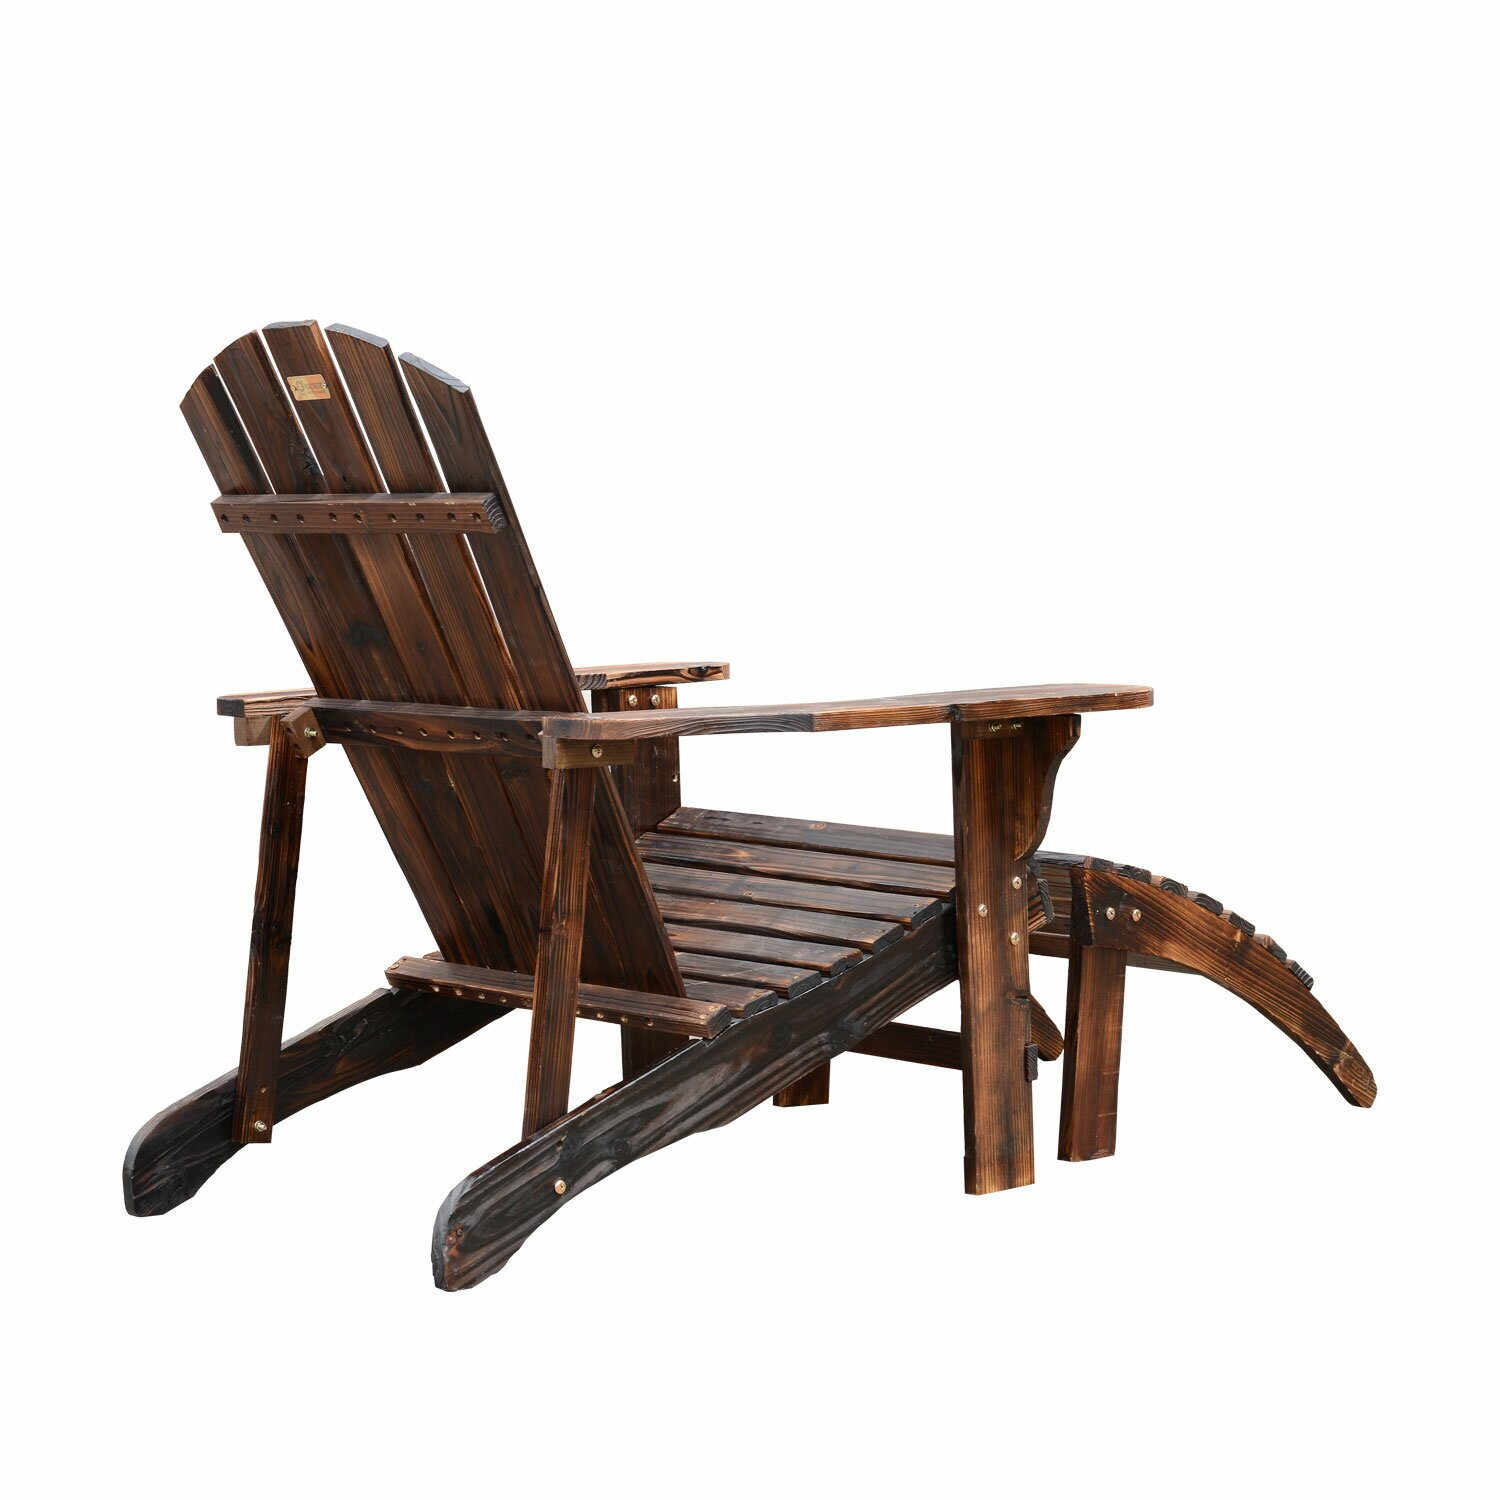 Outsunny Wooden Adirondack Outdoor Patio Lounge Chair Reviews Wayfair